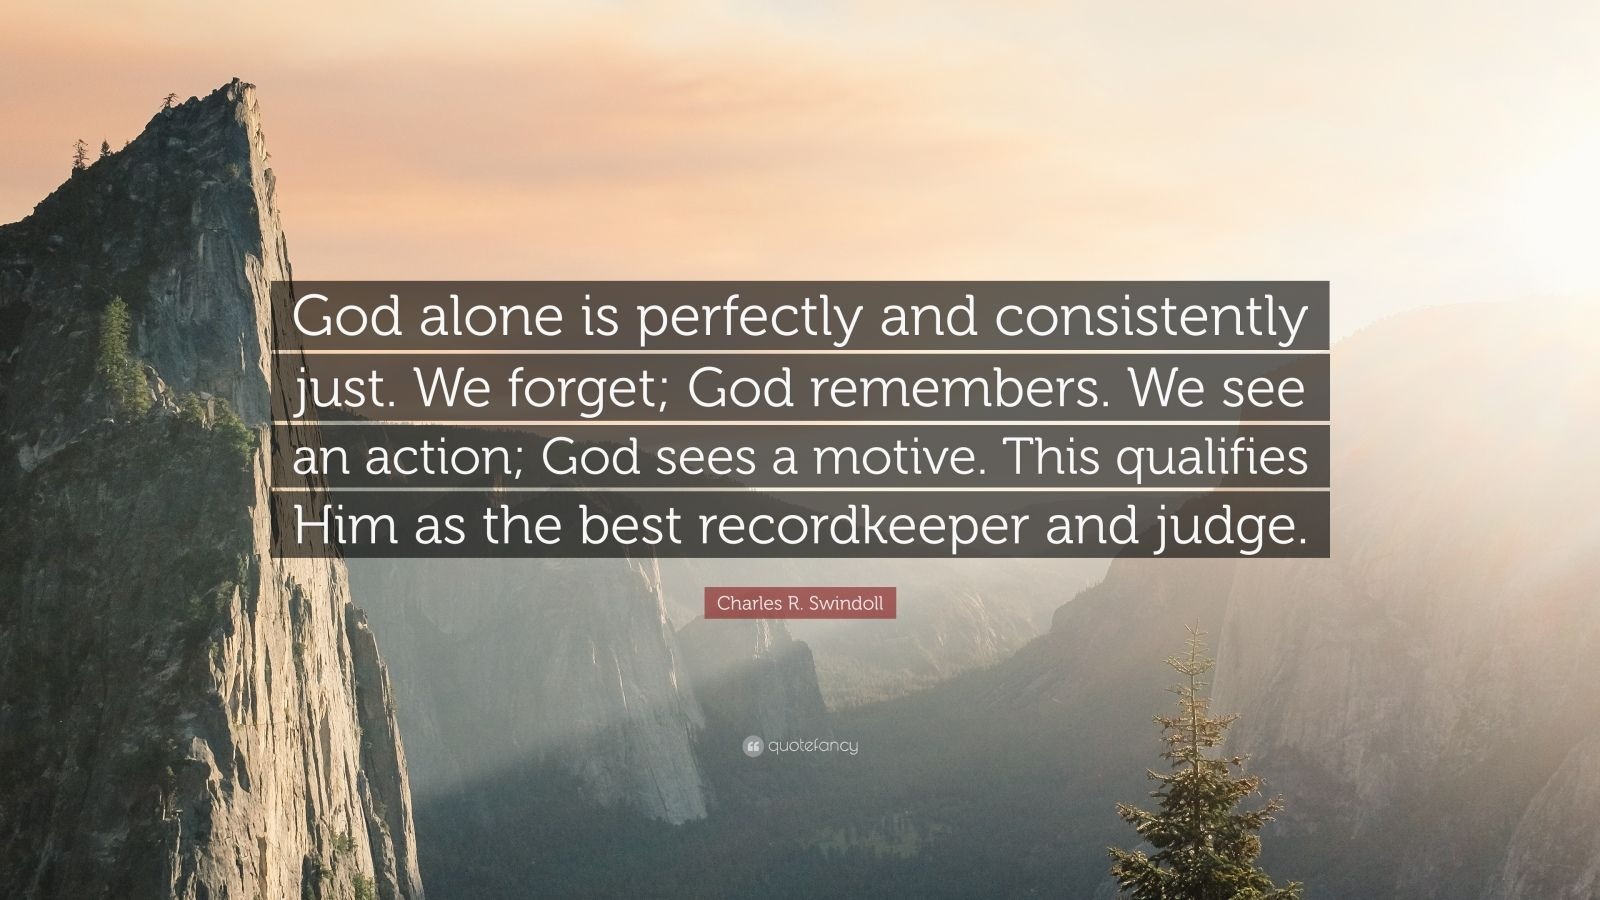 """Charles R. Swindoll Quote: """"God alone is perfectly and consistently just. We forget; God remembers. We see an action; God sees a motive. This qualifies Him as the best recordkeeper and judge."""""""